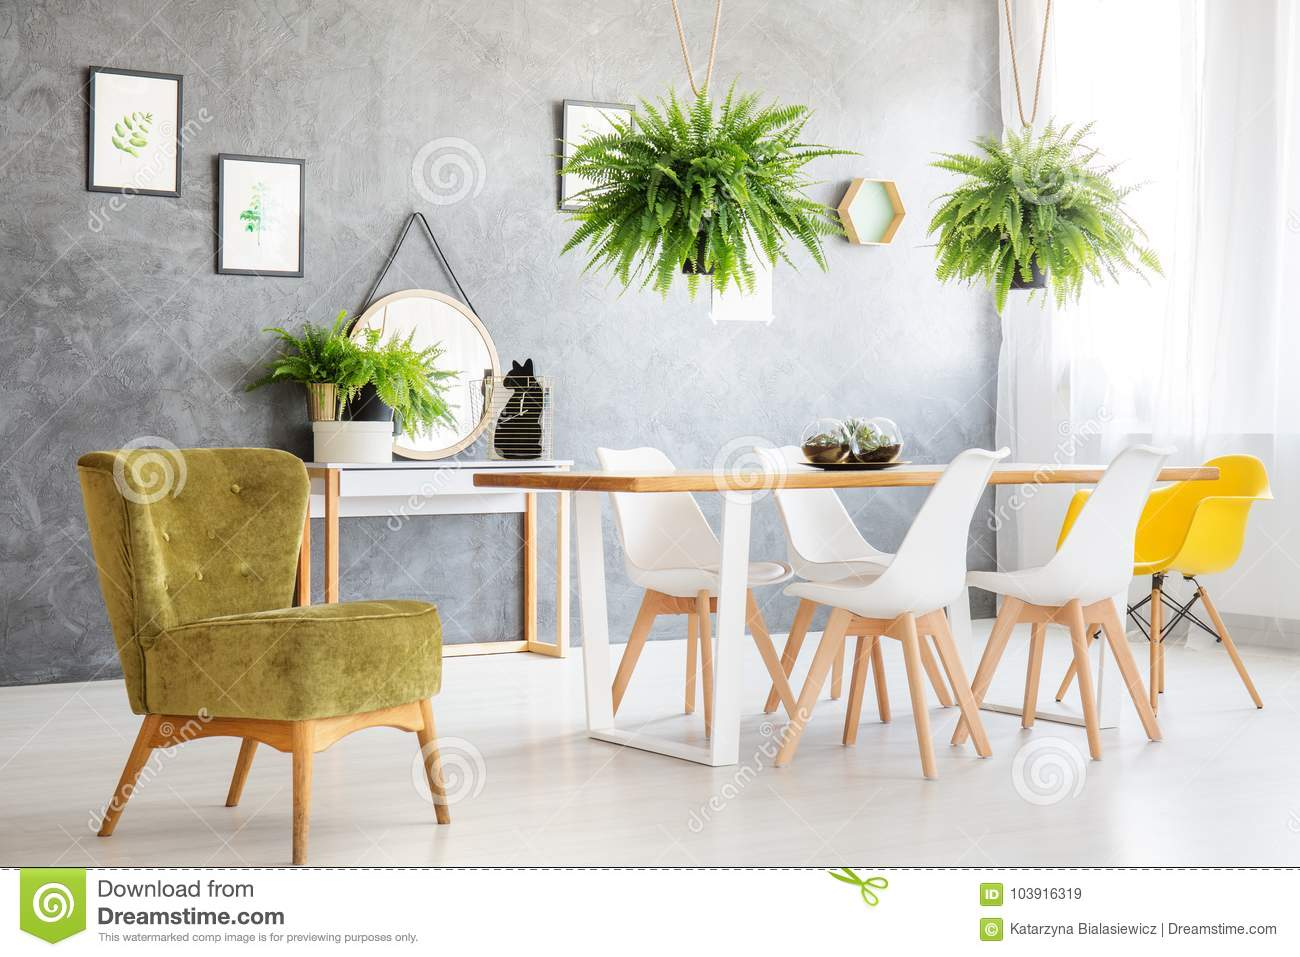 Green Vintage Chair In Room Stock Image - Image of dining ...